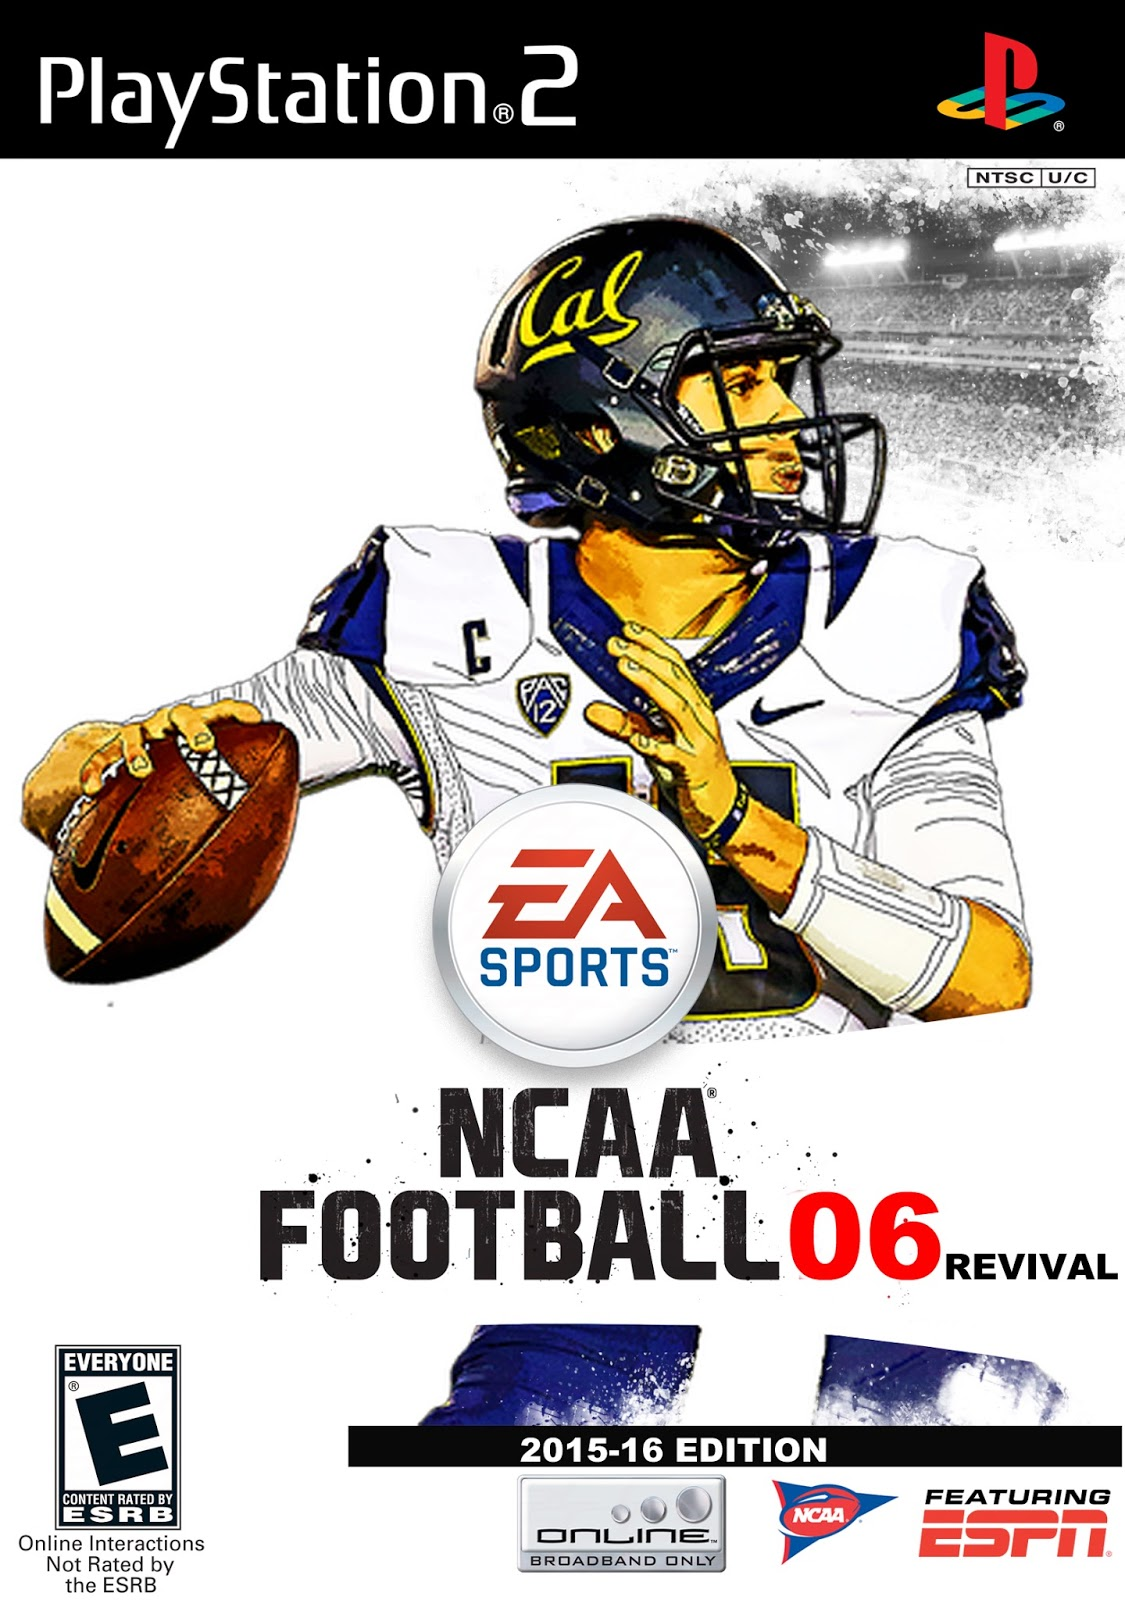 Ncaa football 17 custom covers page 2 operation sports forums i started playing again on ps2 found a template online for ps2 versions from a while ago maxwellsz